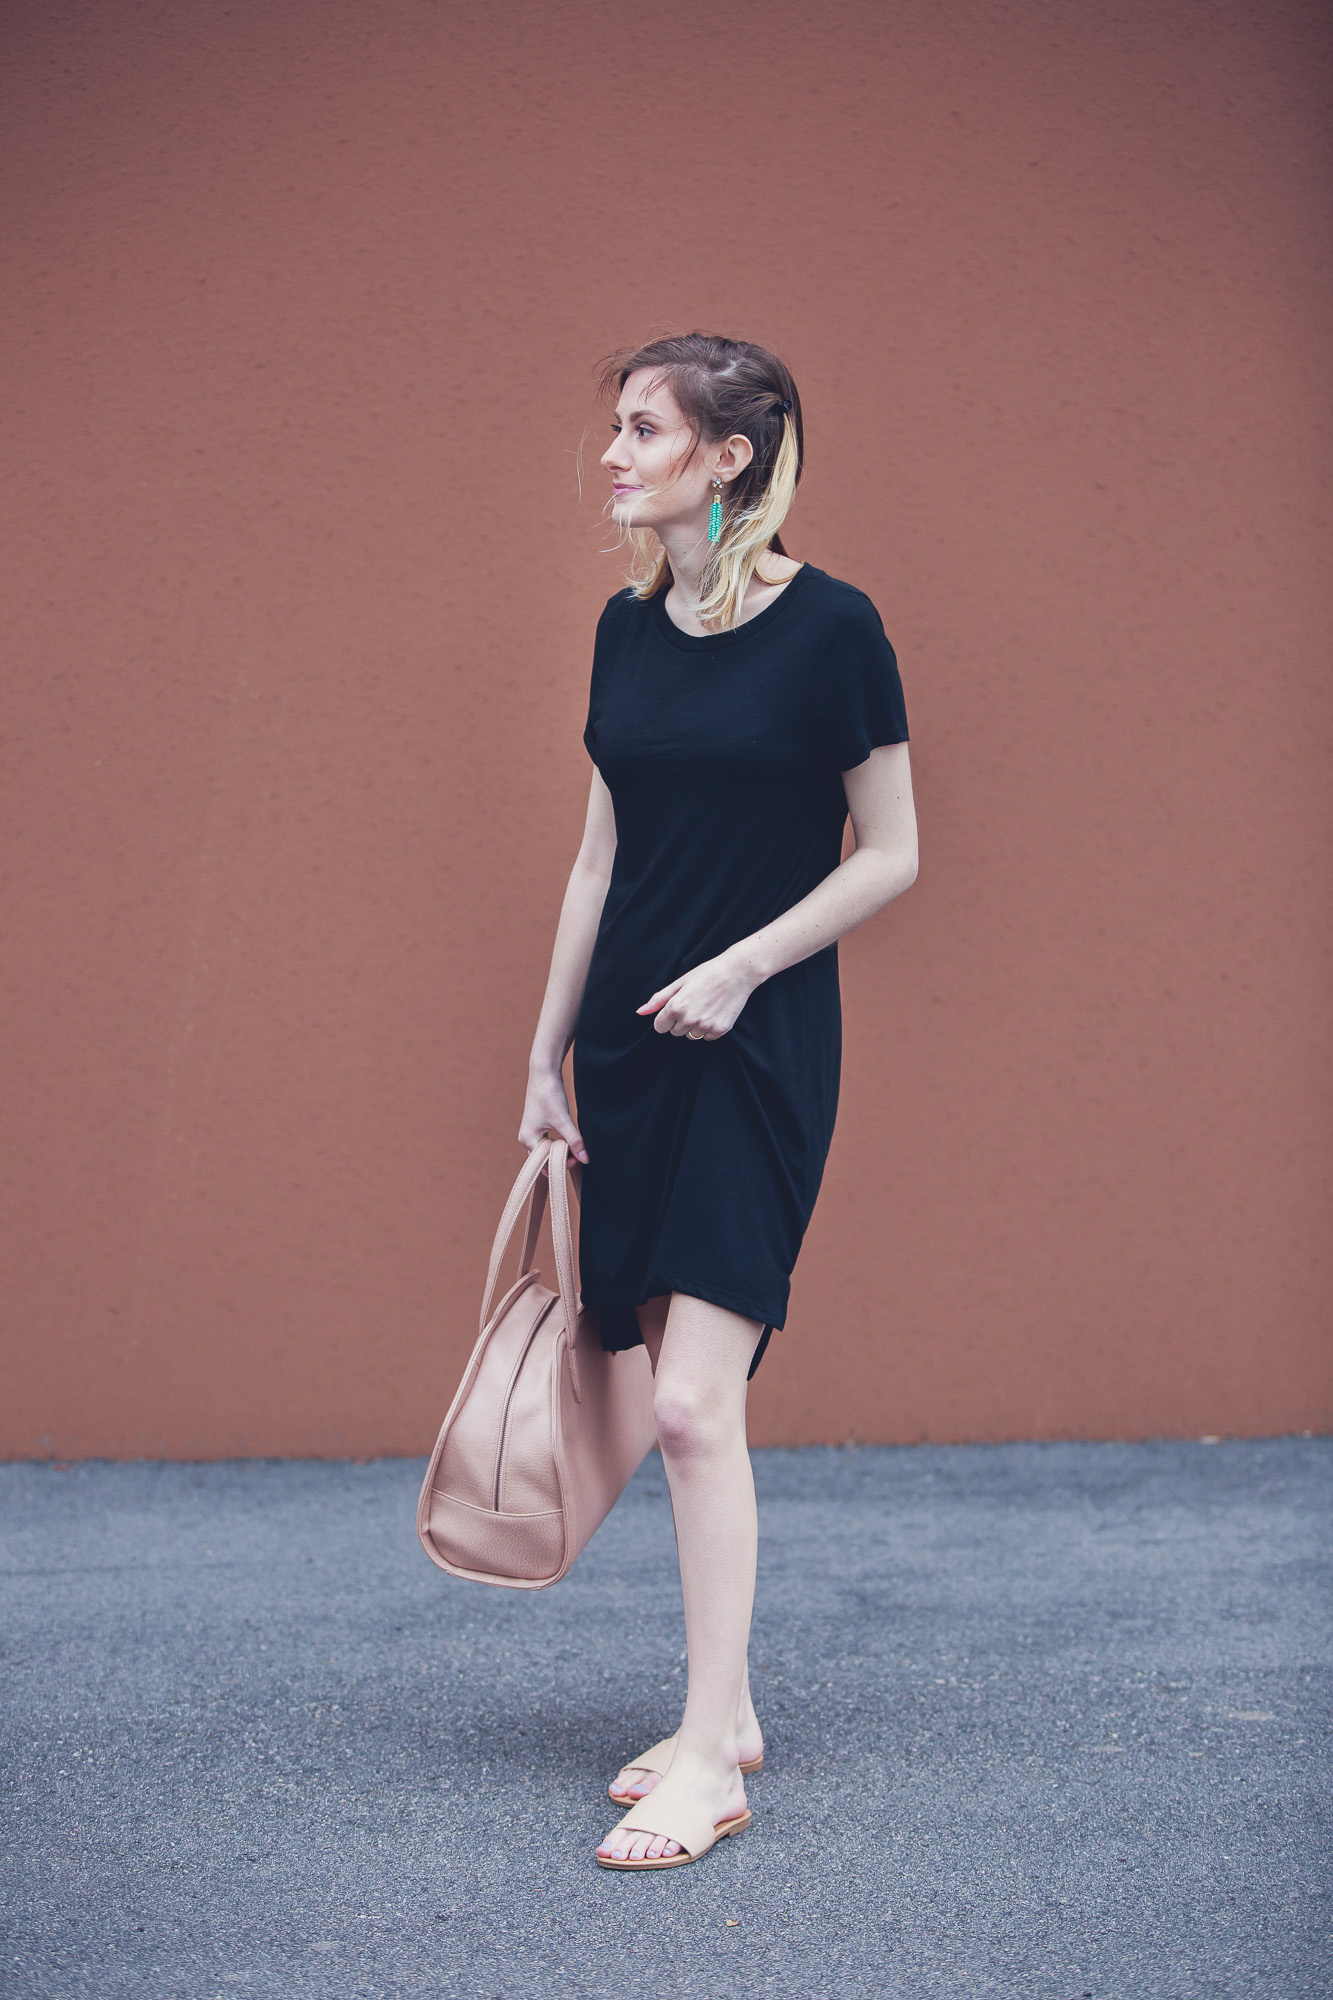 North Carolina lifestyle and fashion blogger, Jessica Linn, on Linn Style wearing a black t-shirt dress from Target, tan sandals from Forever21, Baublebar necklace, and carrying a Matt and Nat purse.